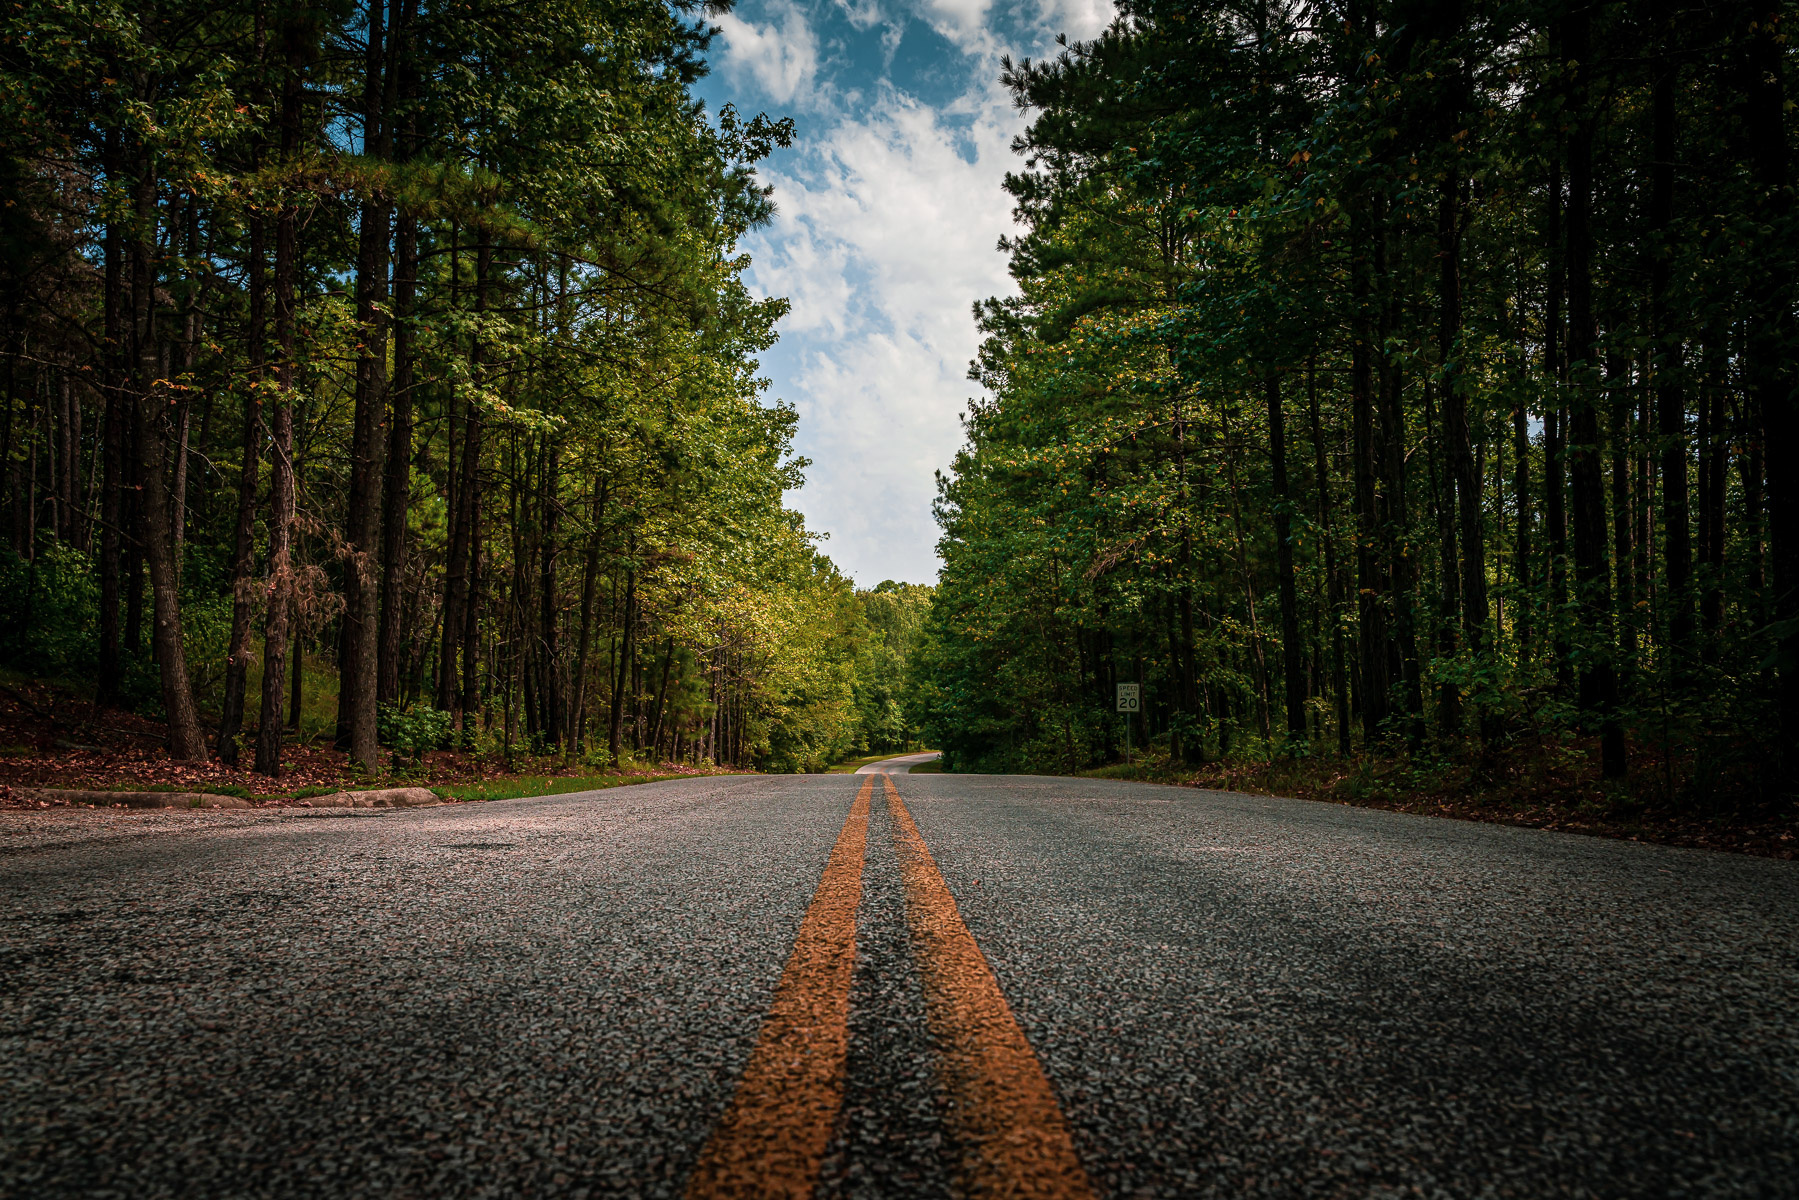 A road through the piney forest of East Texas' Lake Bob Sandlin State Park.